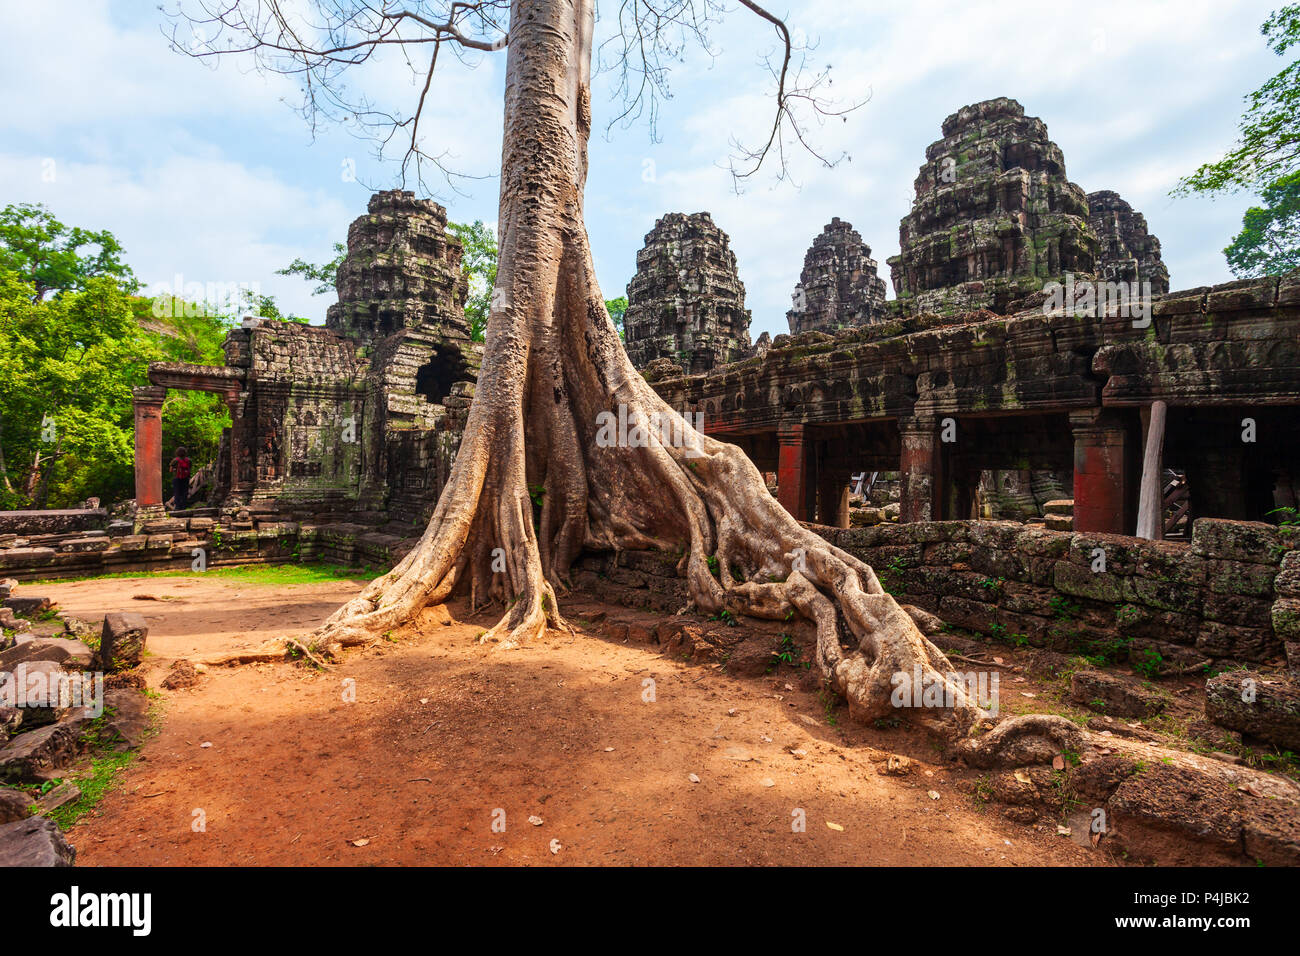 Ta Prohm or Prasat Taprohm is the temple at Angkor in Siem Reap in Cambodia - Stock Image